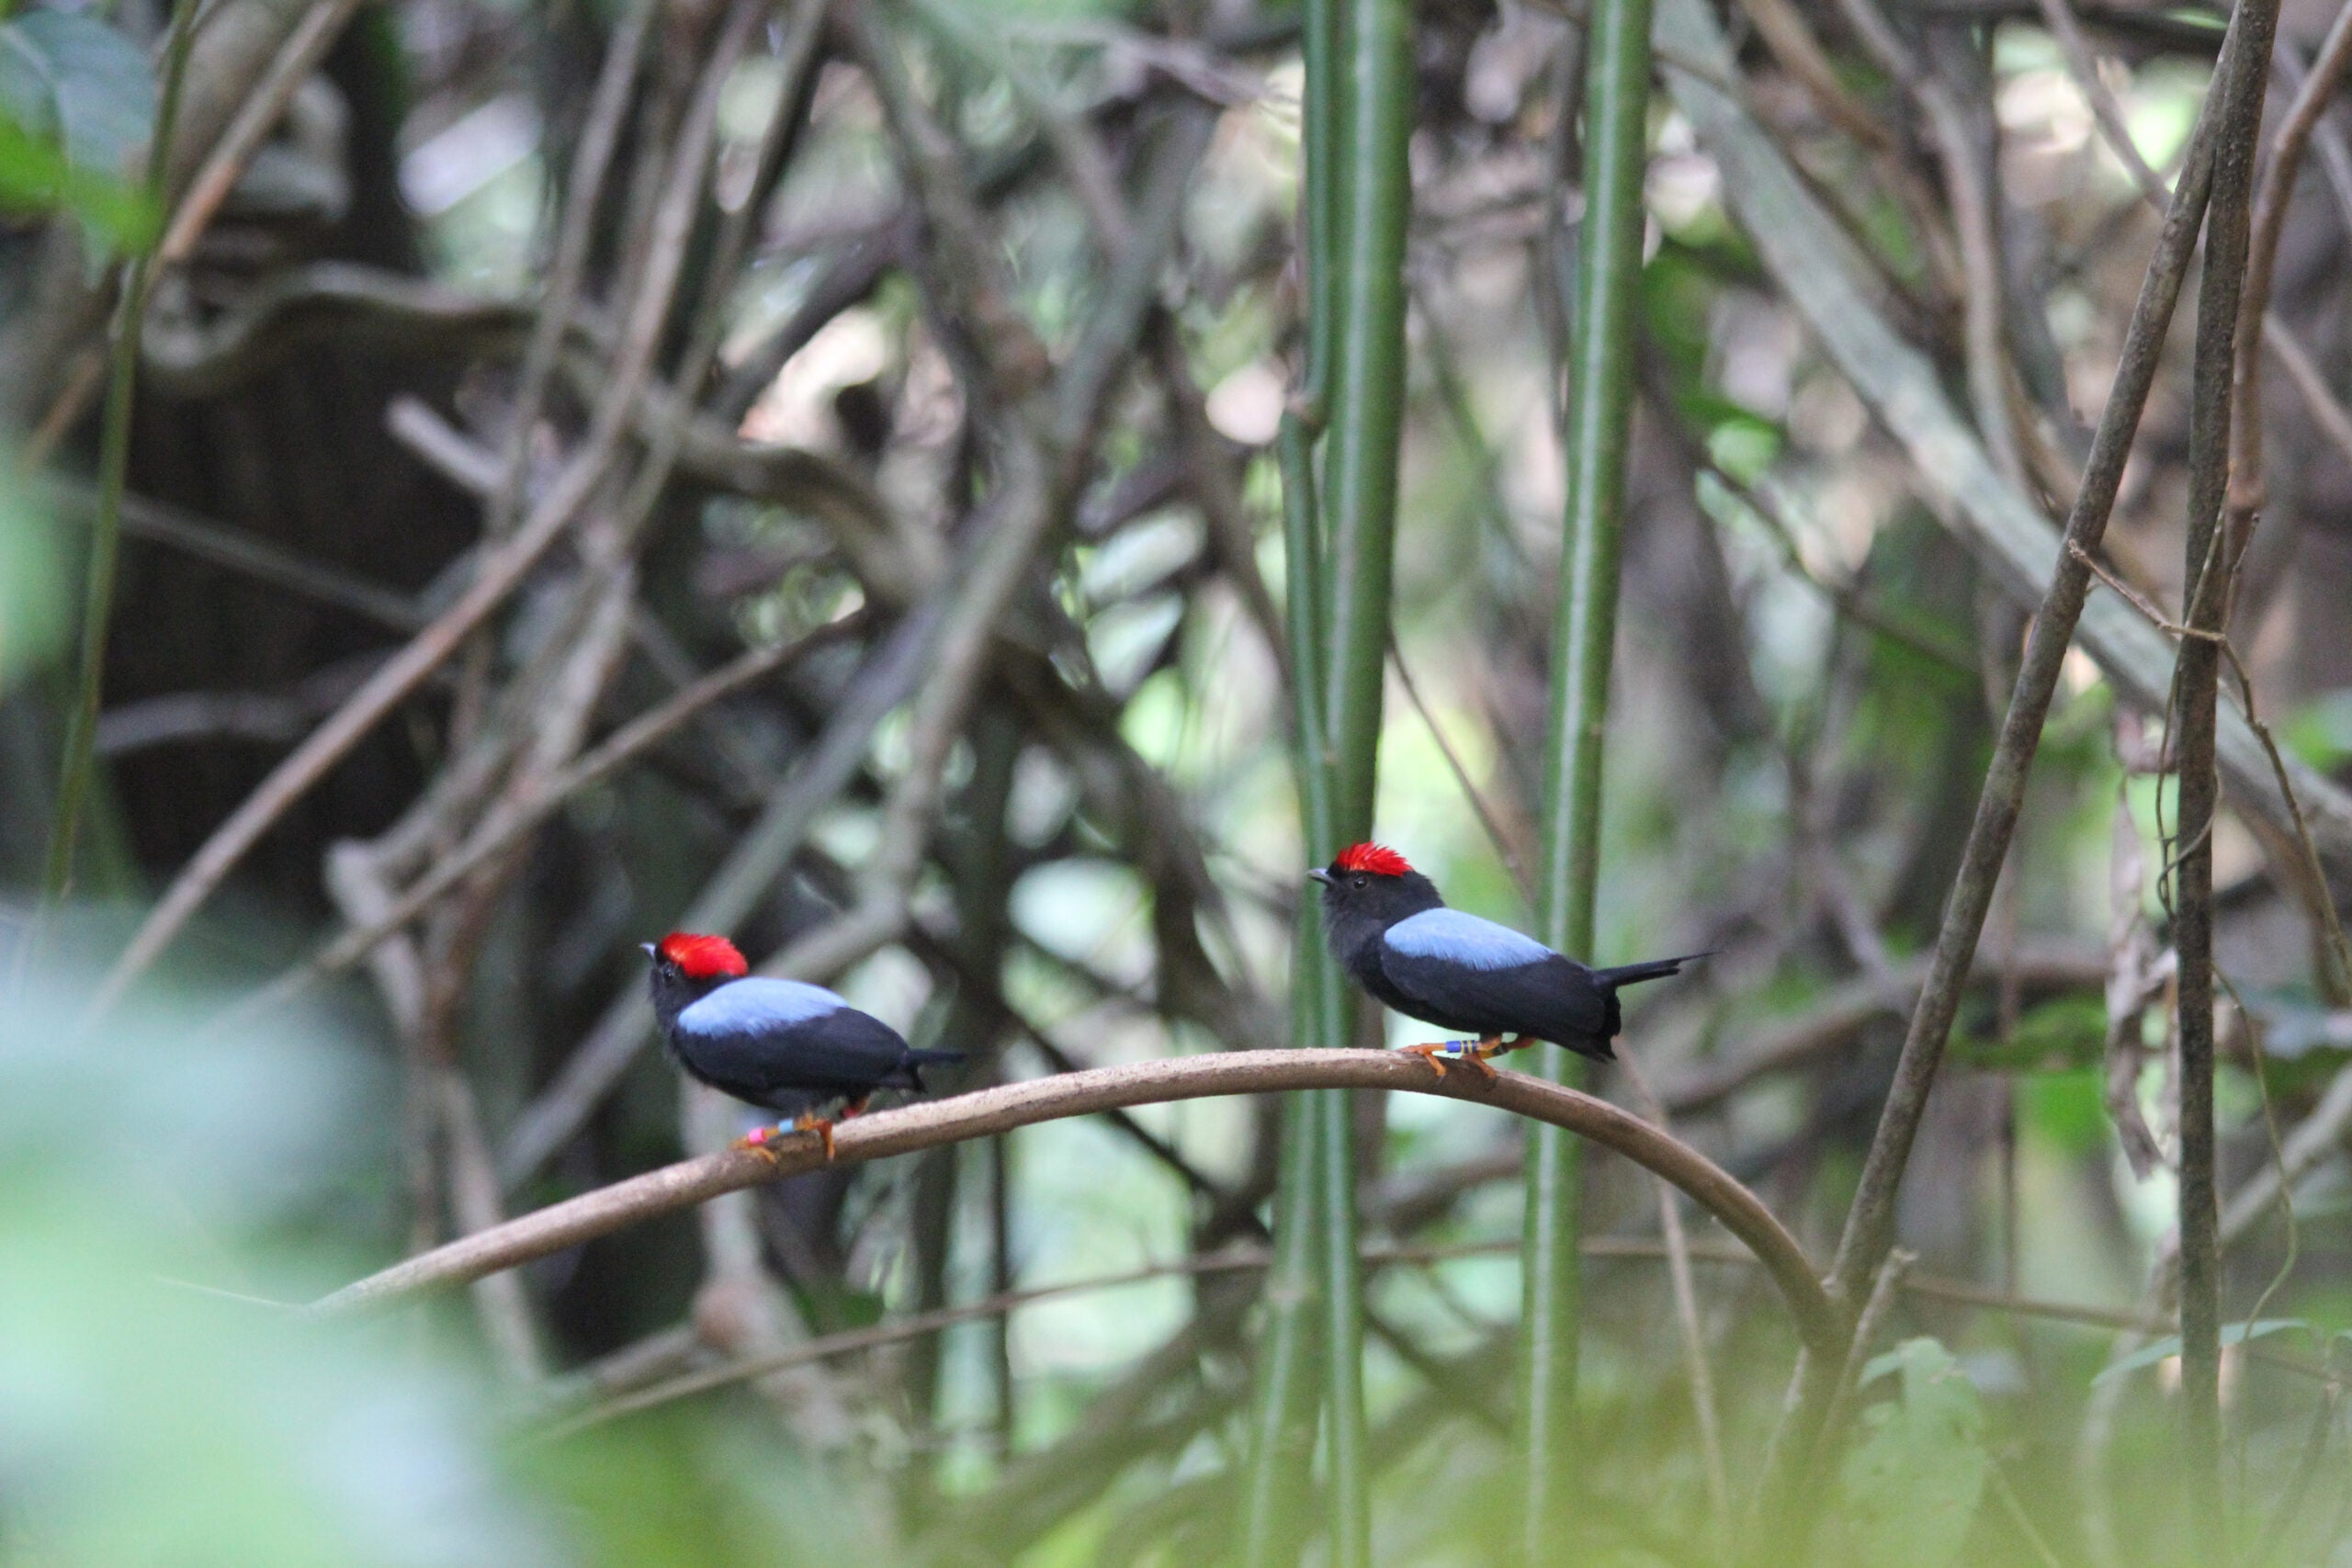 Meet the birds that work as wingmen for other males